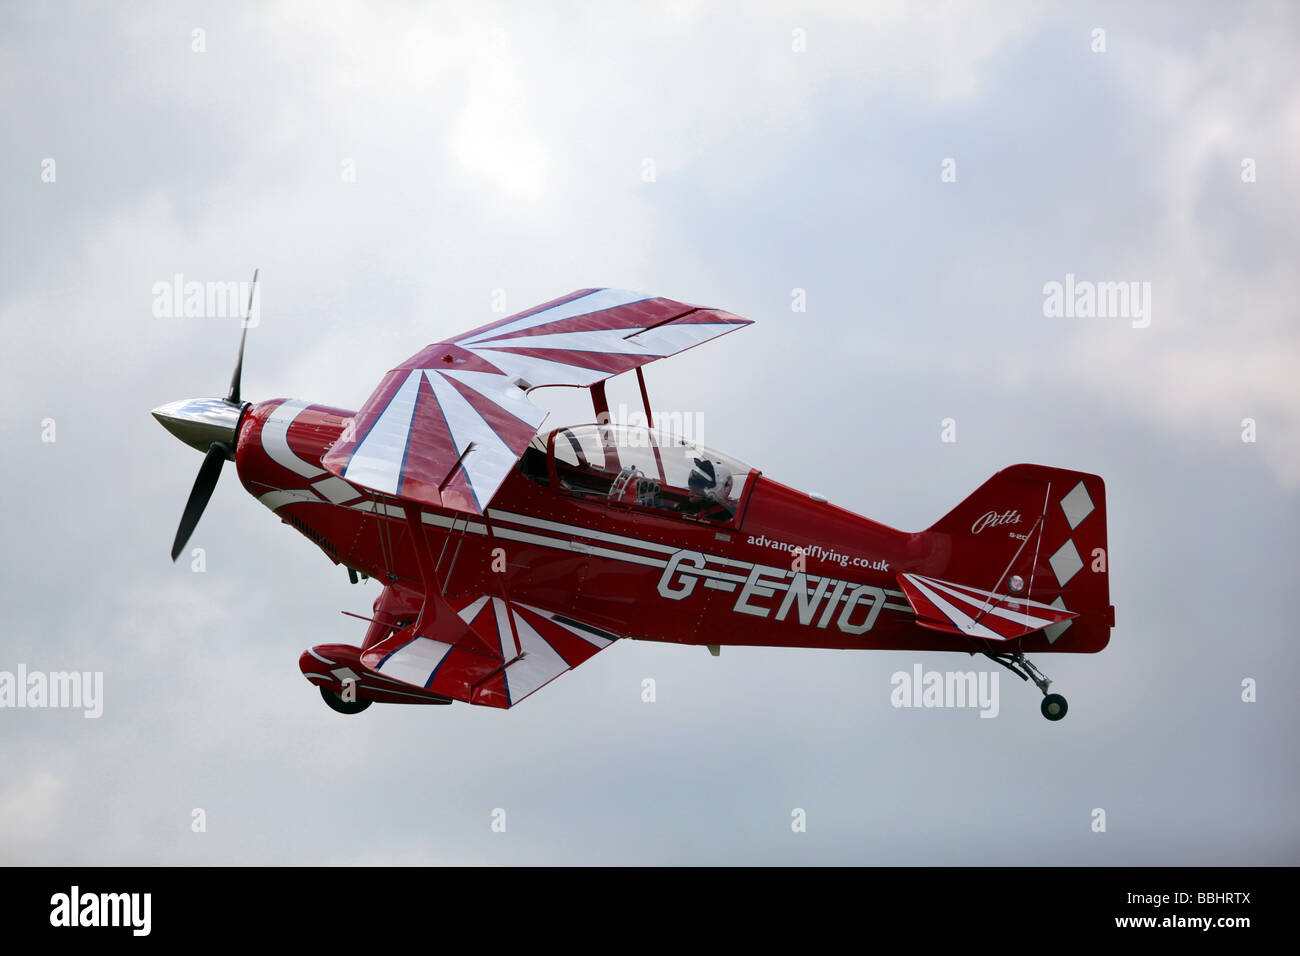 A  Pitts S2C Aviat bi plane flies in the sky above England, - Stock Image